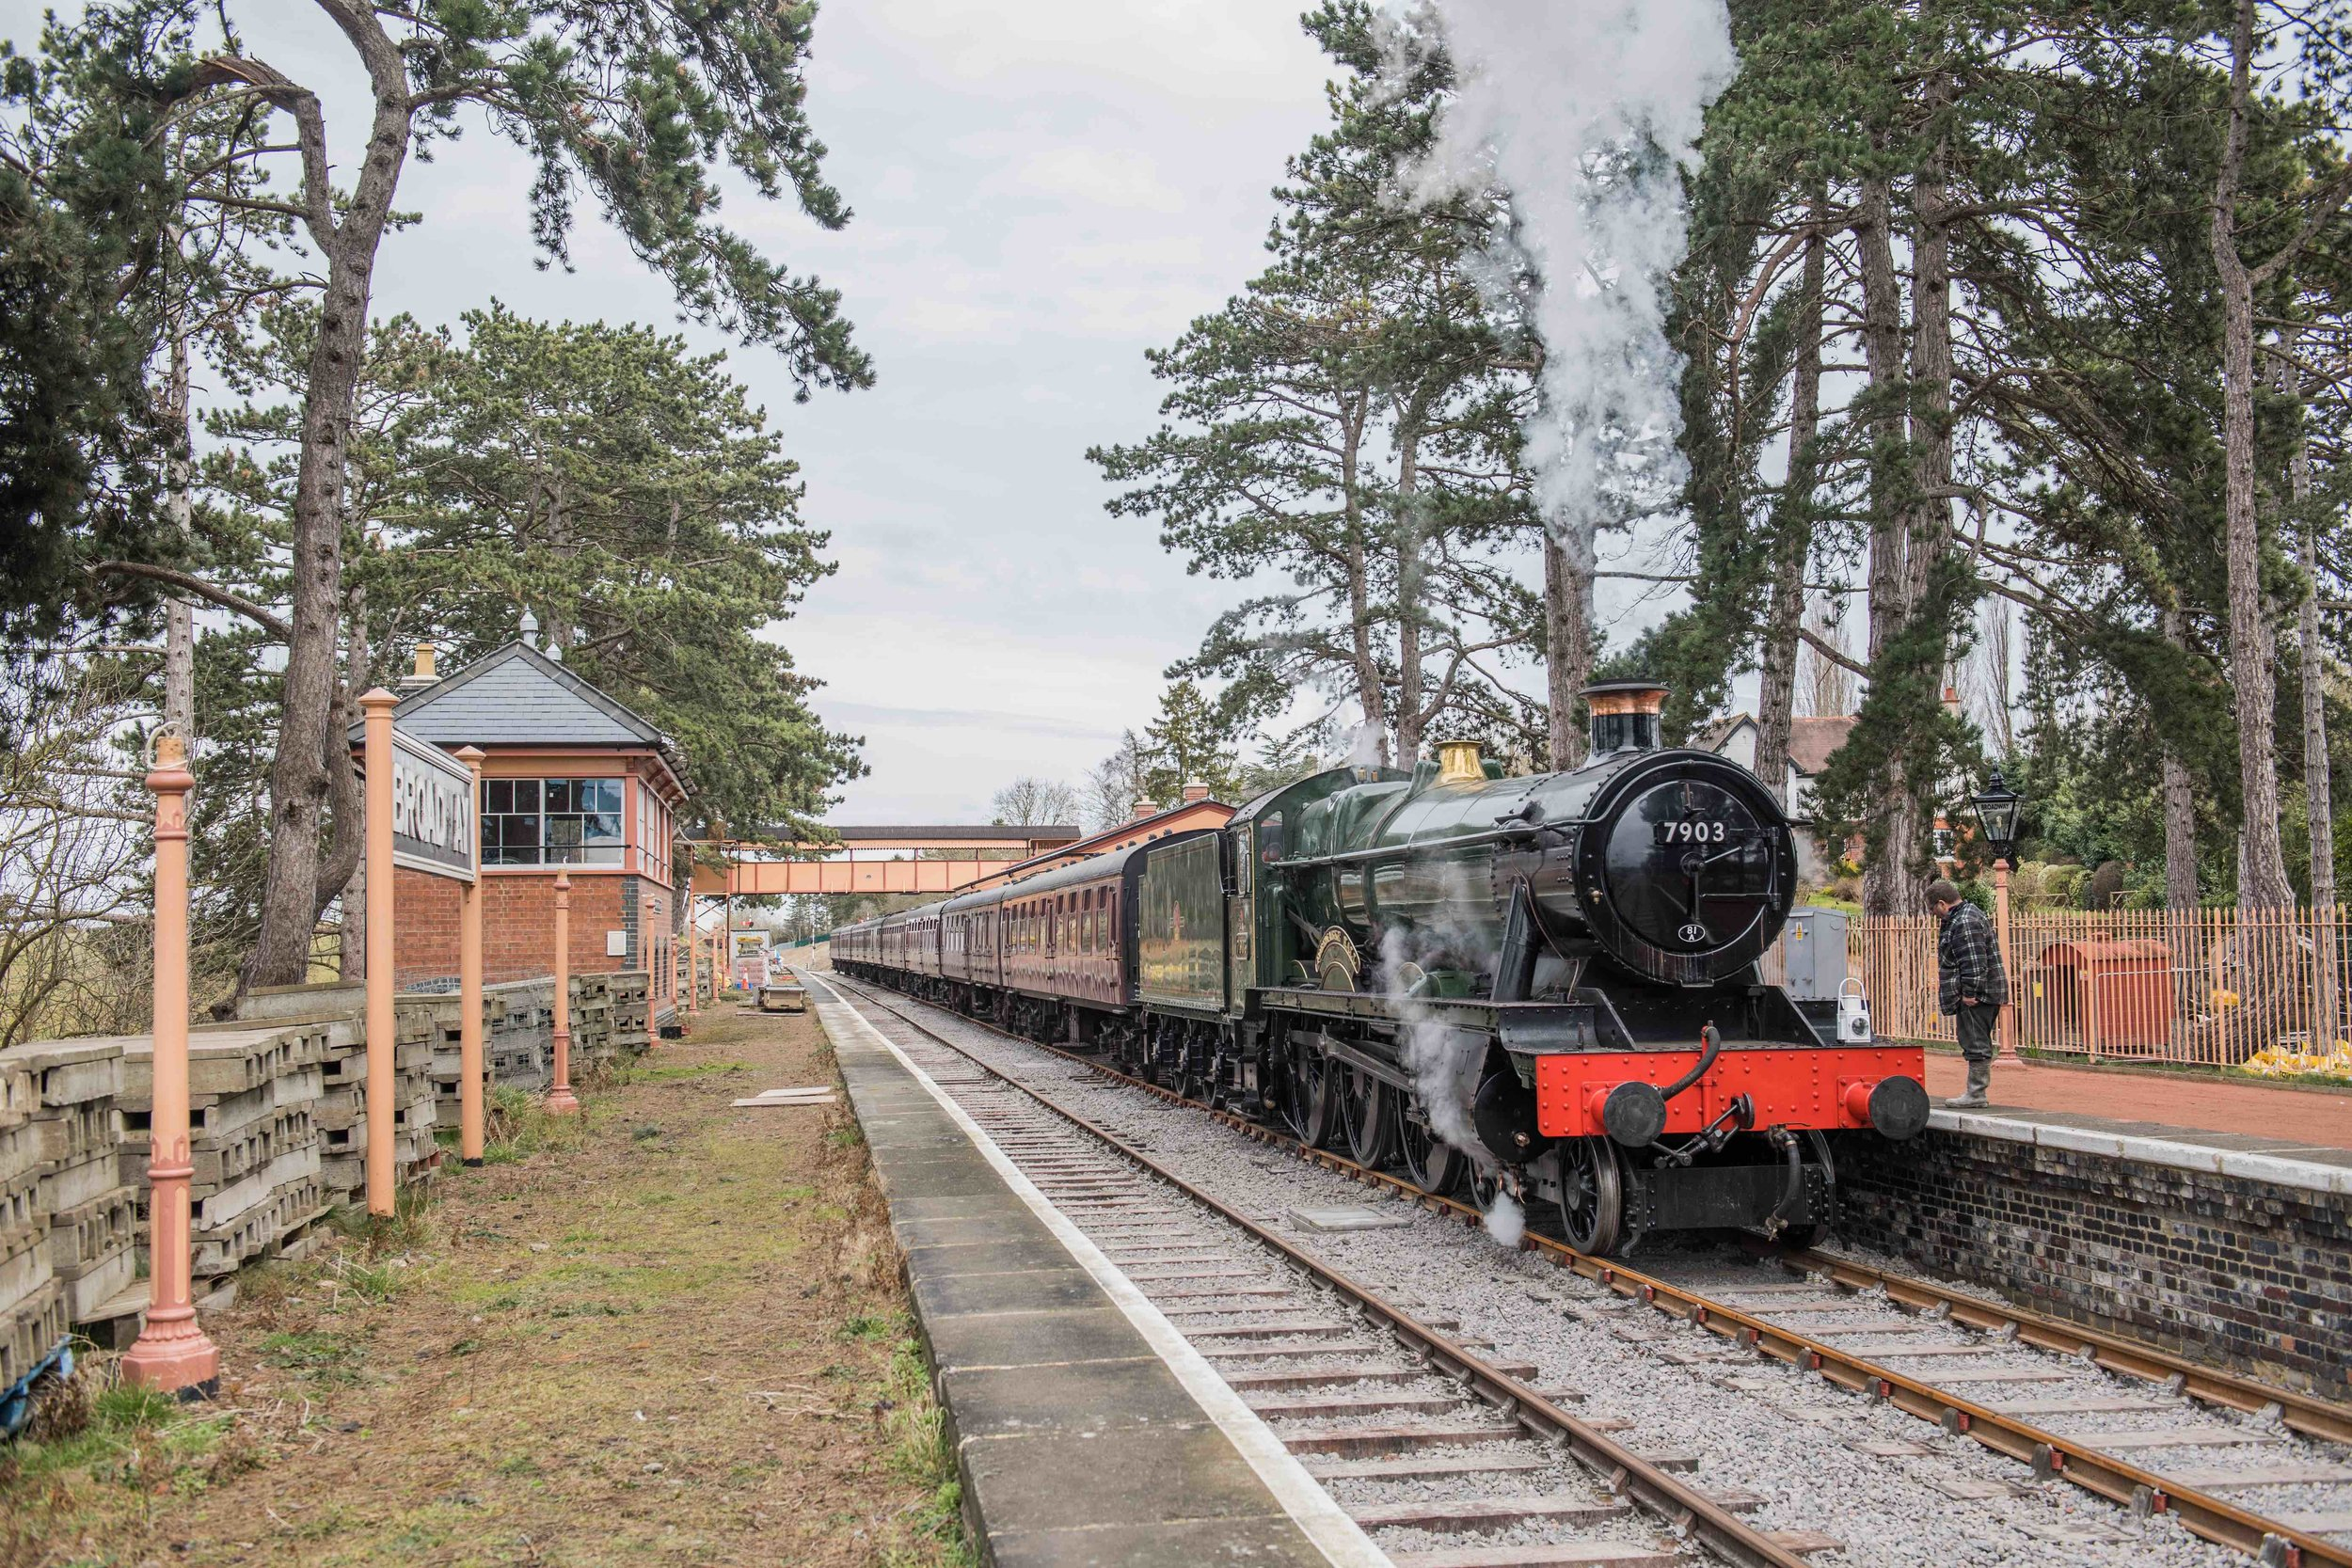 'Modified Hall' No. 7903  Foremarke Hall  sizzles in Broadway station, having just pulled the first steam-hauled train into the station since March 1960 on March 9. JACK BOSKETT